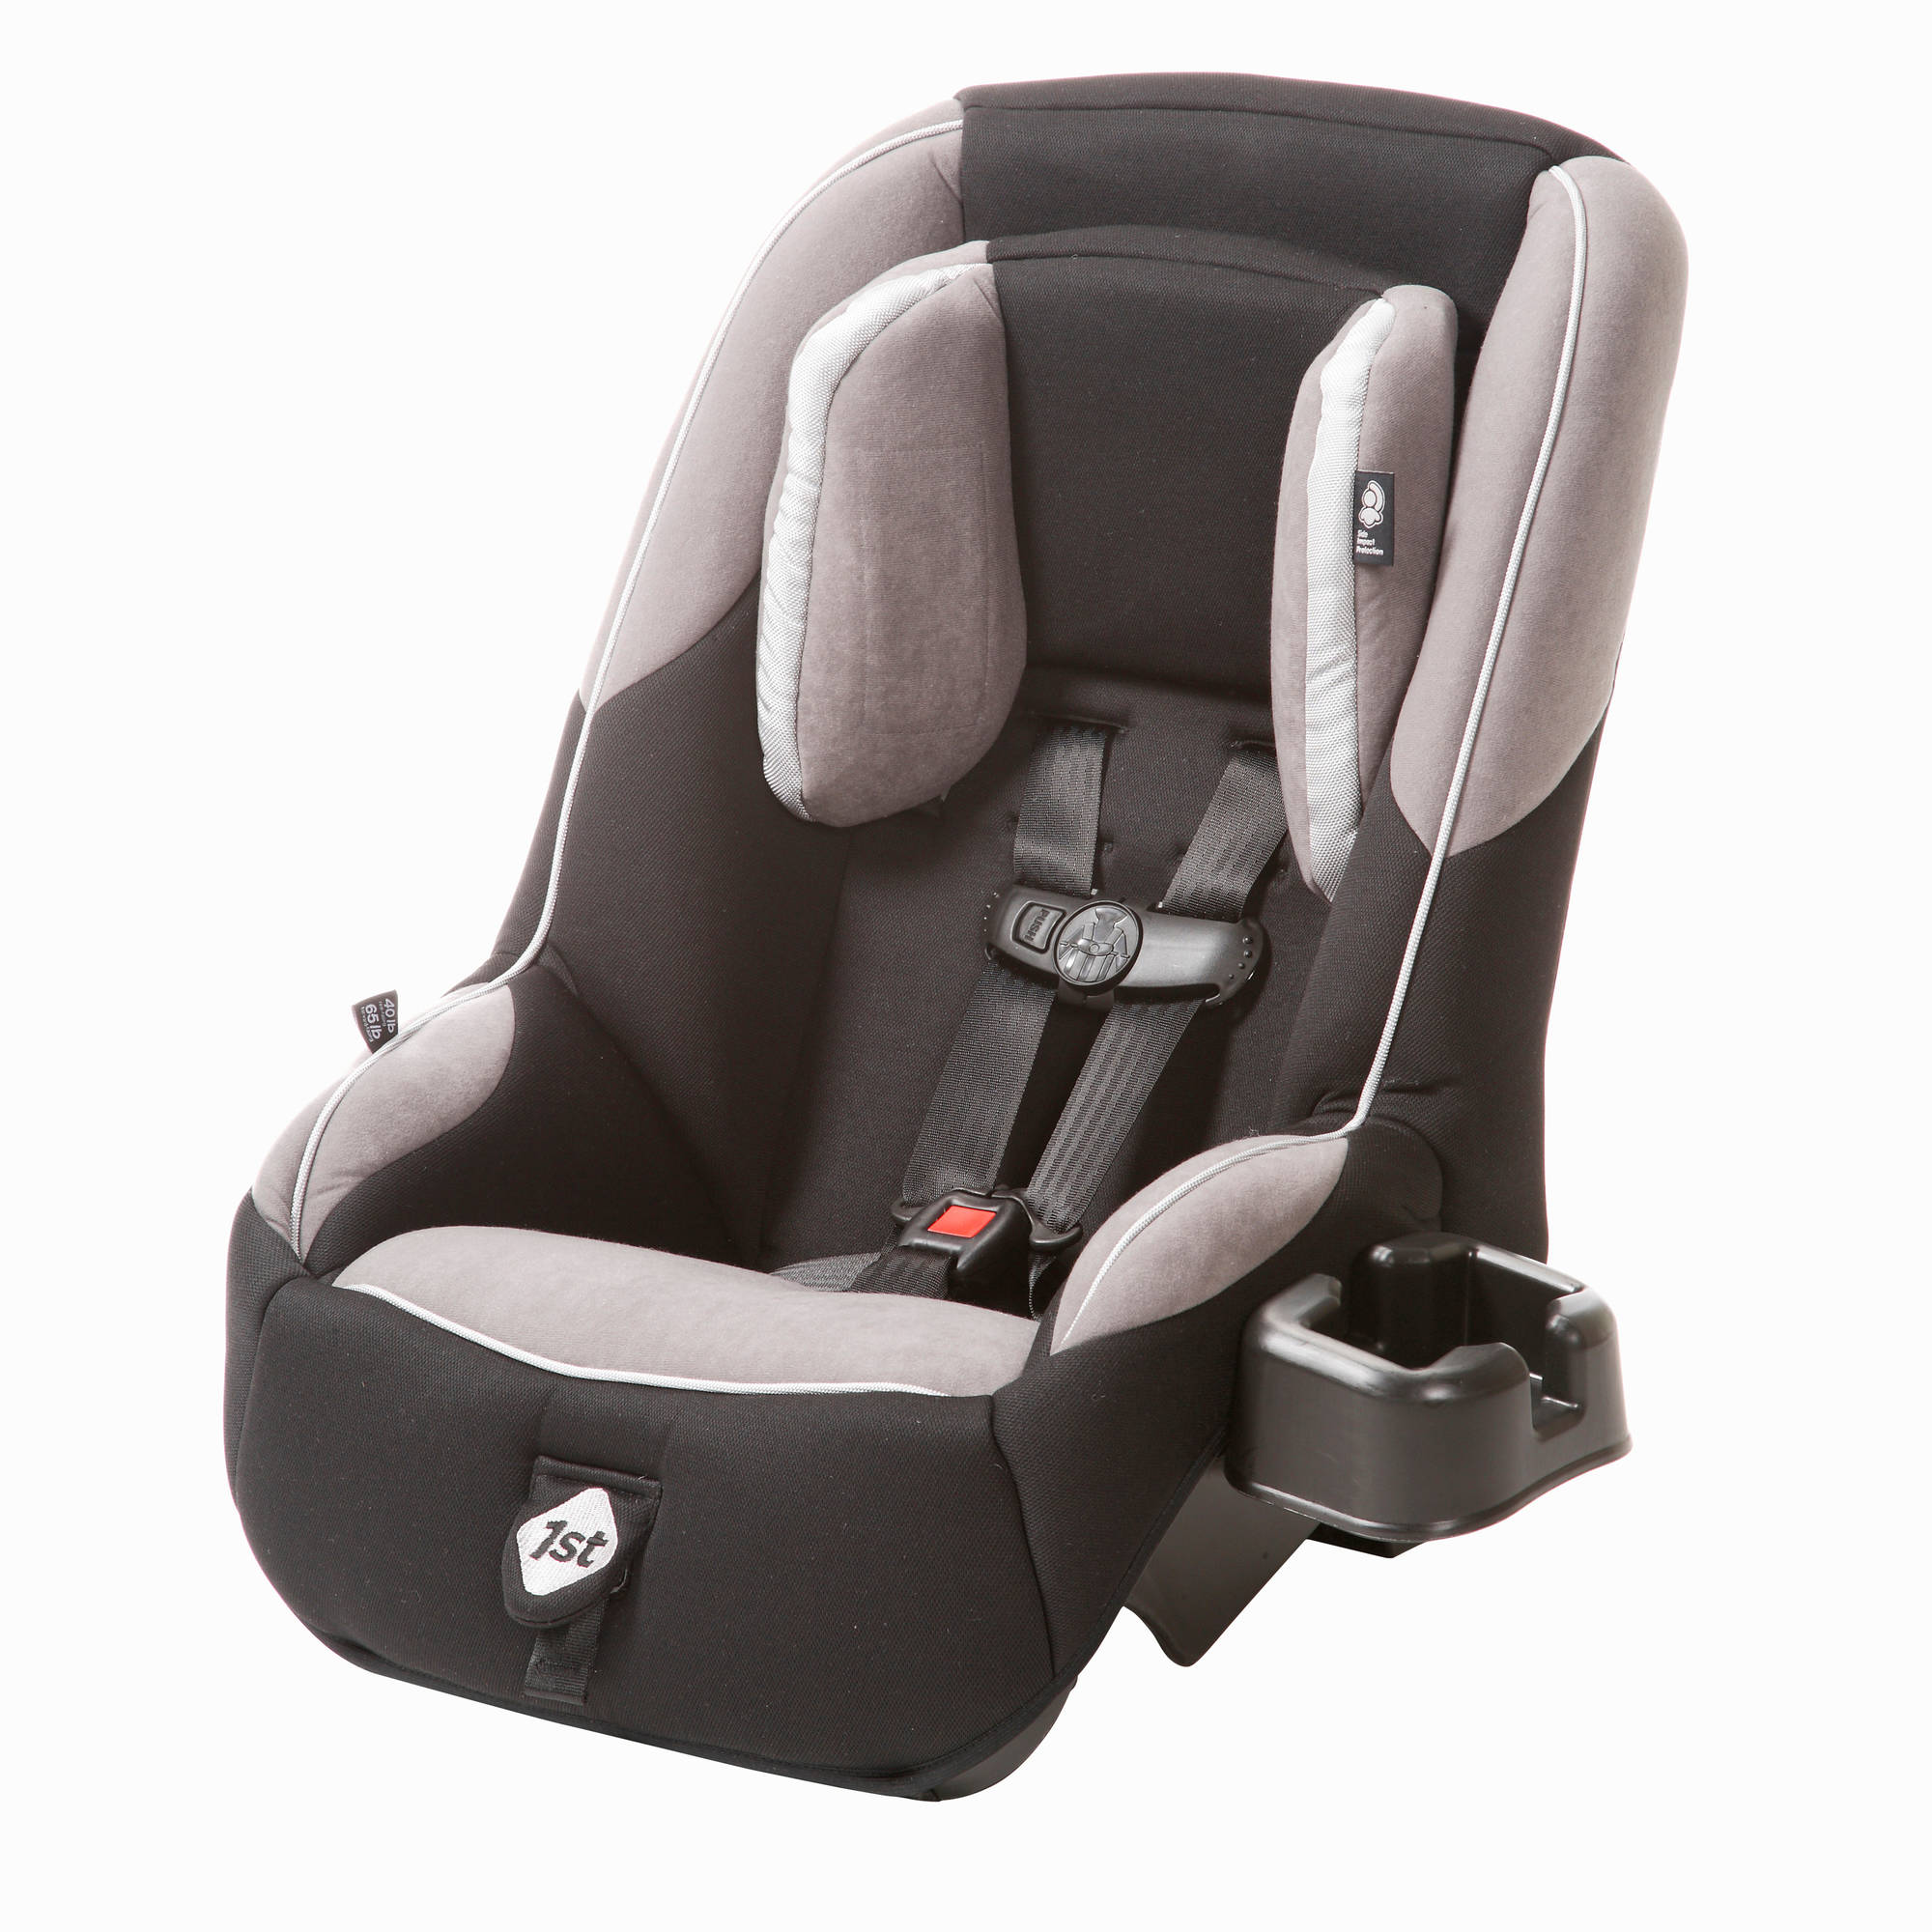 Safety 1st Guide 65 Sport Convertible Car Seat, Athens